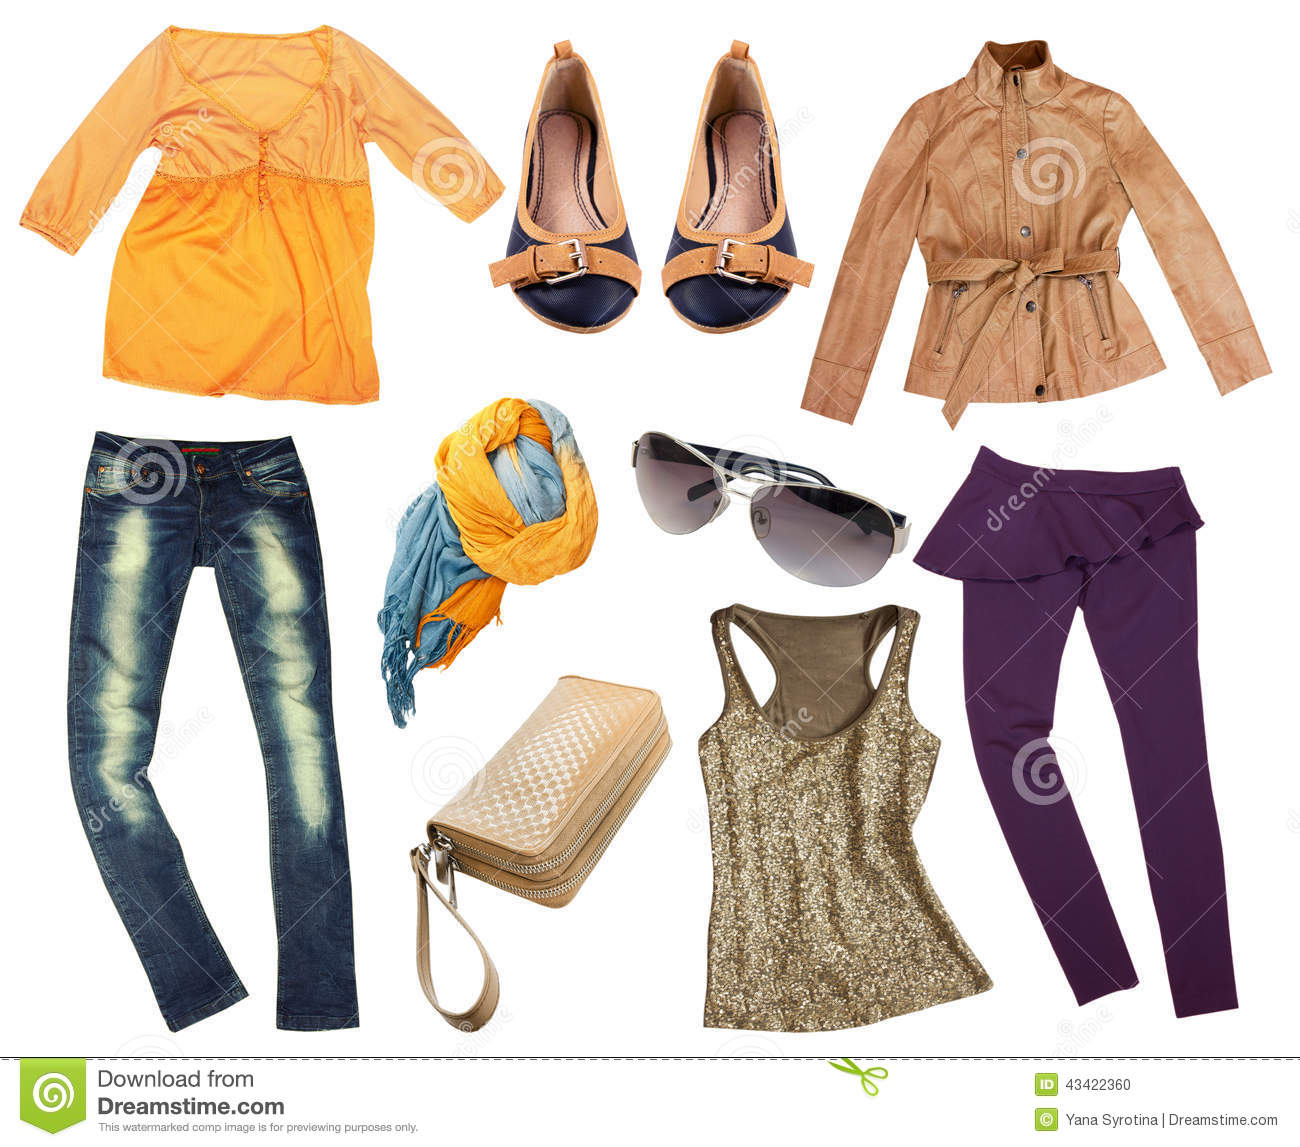 cripatsur.ga has an endless amount of Womens Clothing Accessories like belts, buckles, scarves, wallets, socks, bags and MORE! If you bought it from us, it's something valuable and full of quality!